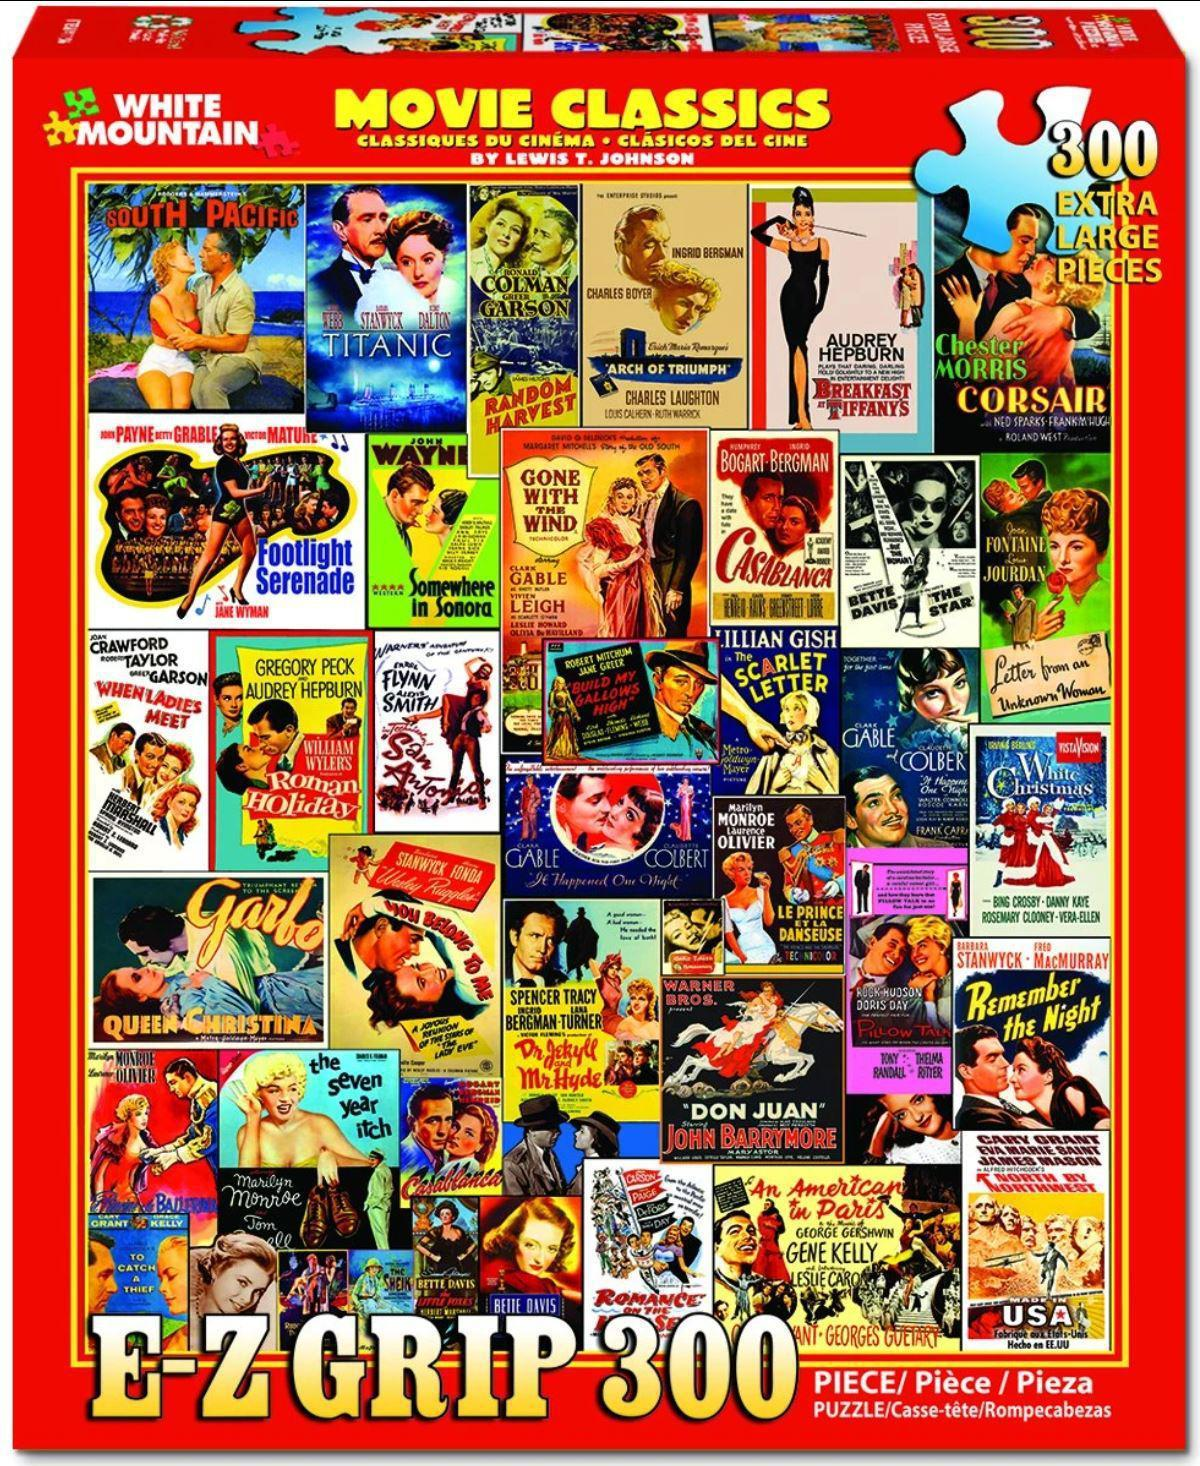 Movie Classics 300 Piece EZ_HOLD Jigsaw Puzzle by White Mountain Puzzle